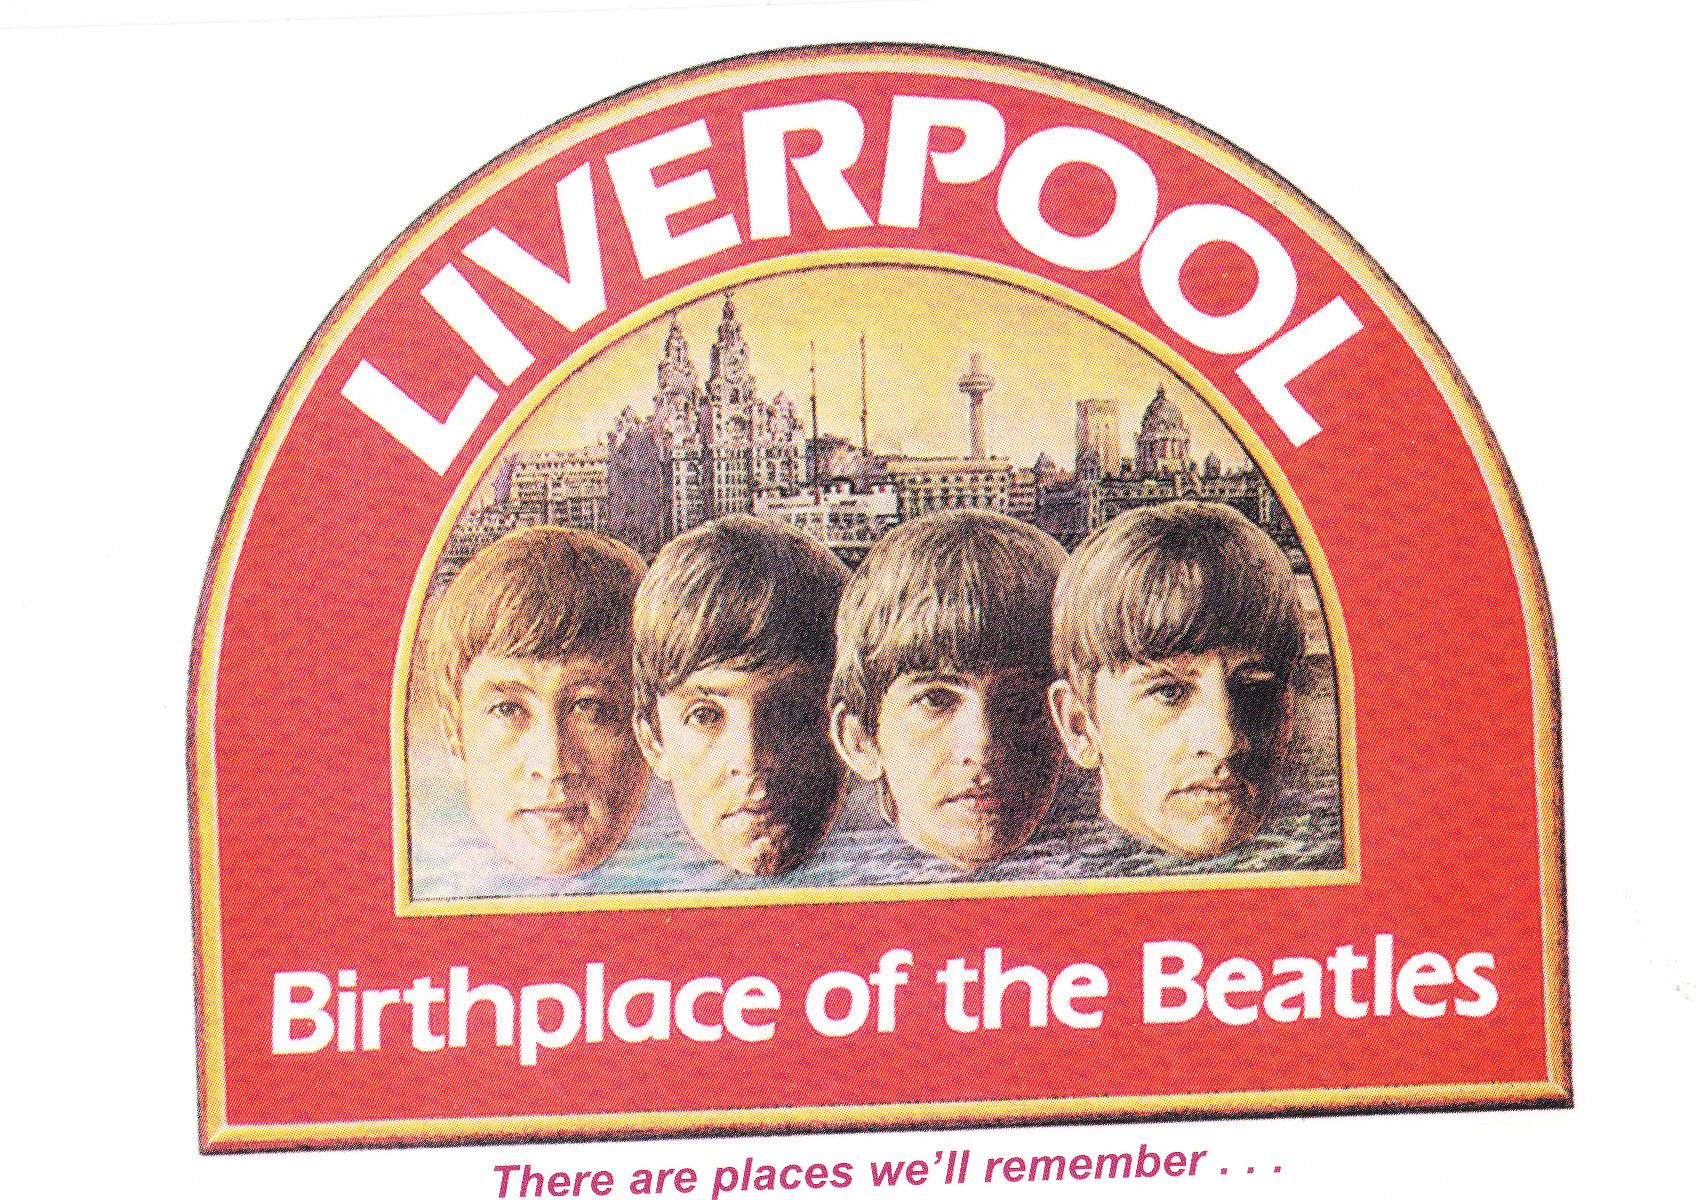 """""""All four members of the Beatles were born within a 4 mile radius of the City centre.  They all attended school in Liverpool and went on to dominate the musical landscape of the City before turning their attention to the rest of the world.  www.caverncitytours.com"""""""